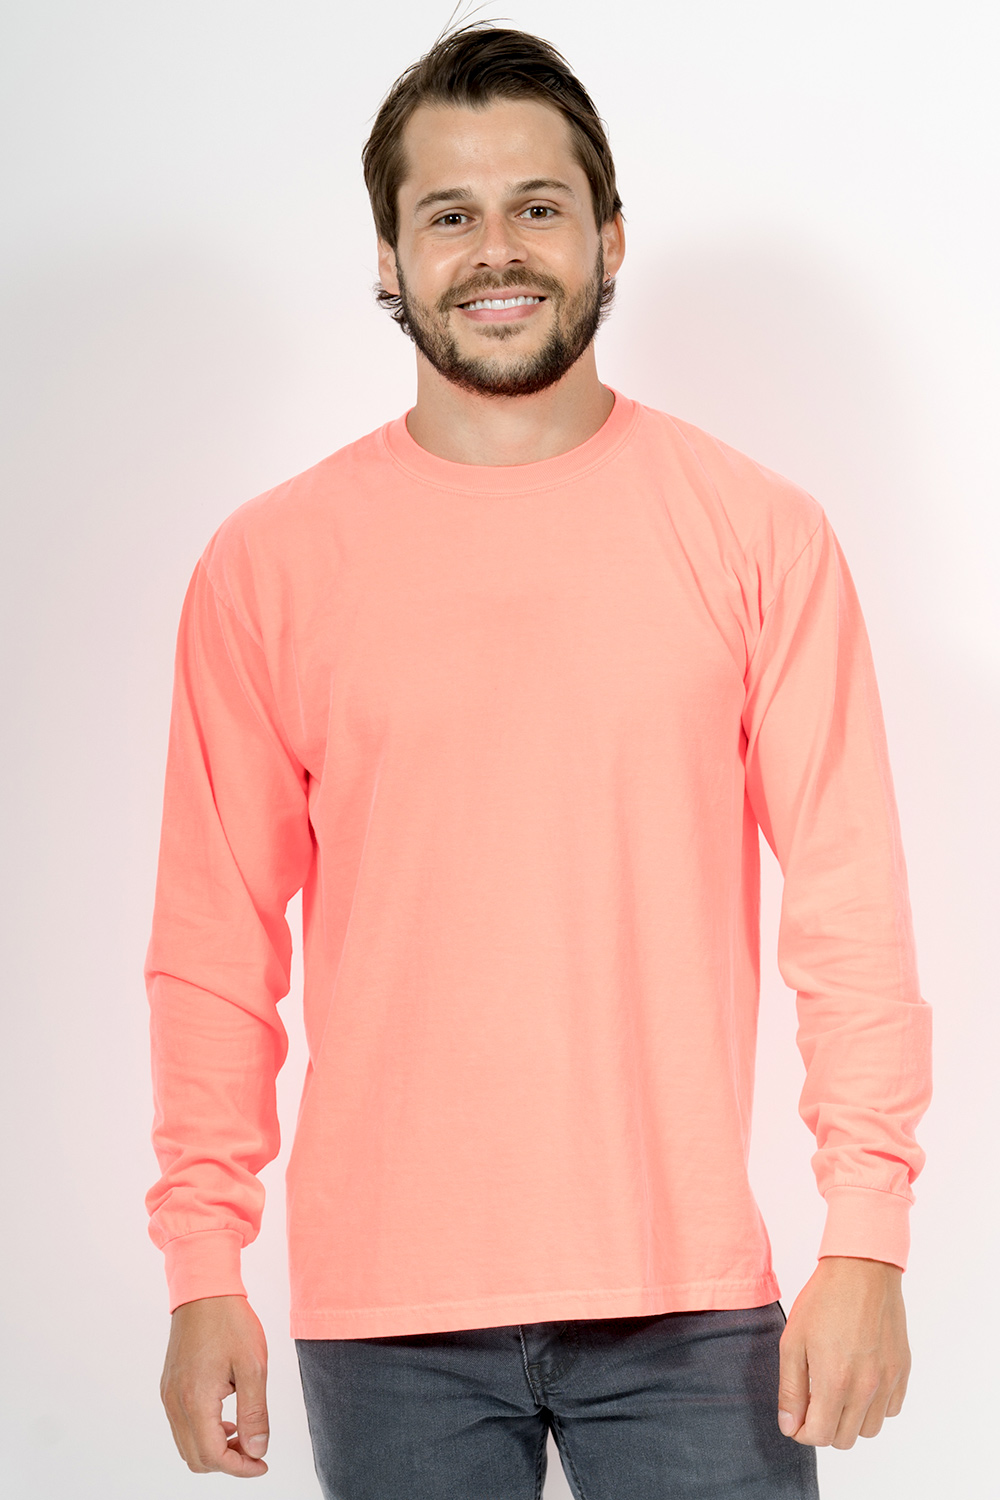 Custom Comfort Colors 1566 long-sleeve t-shirt front